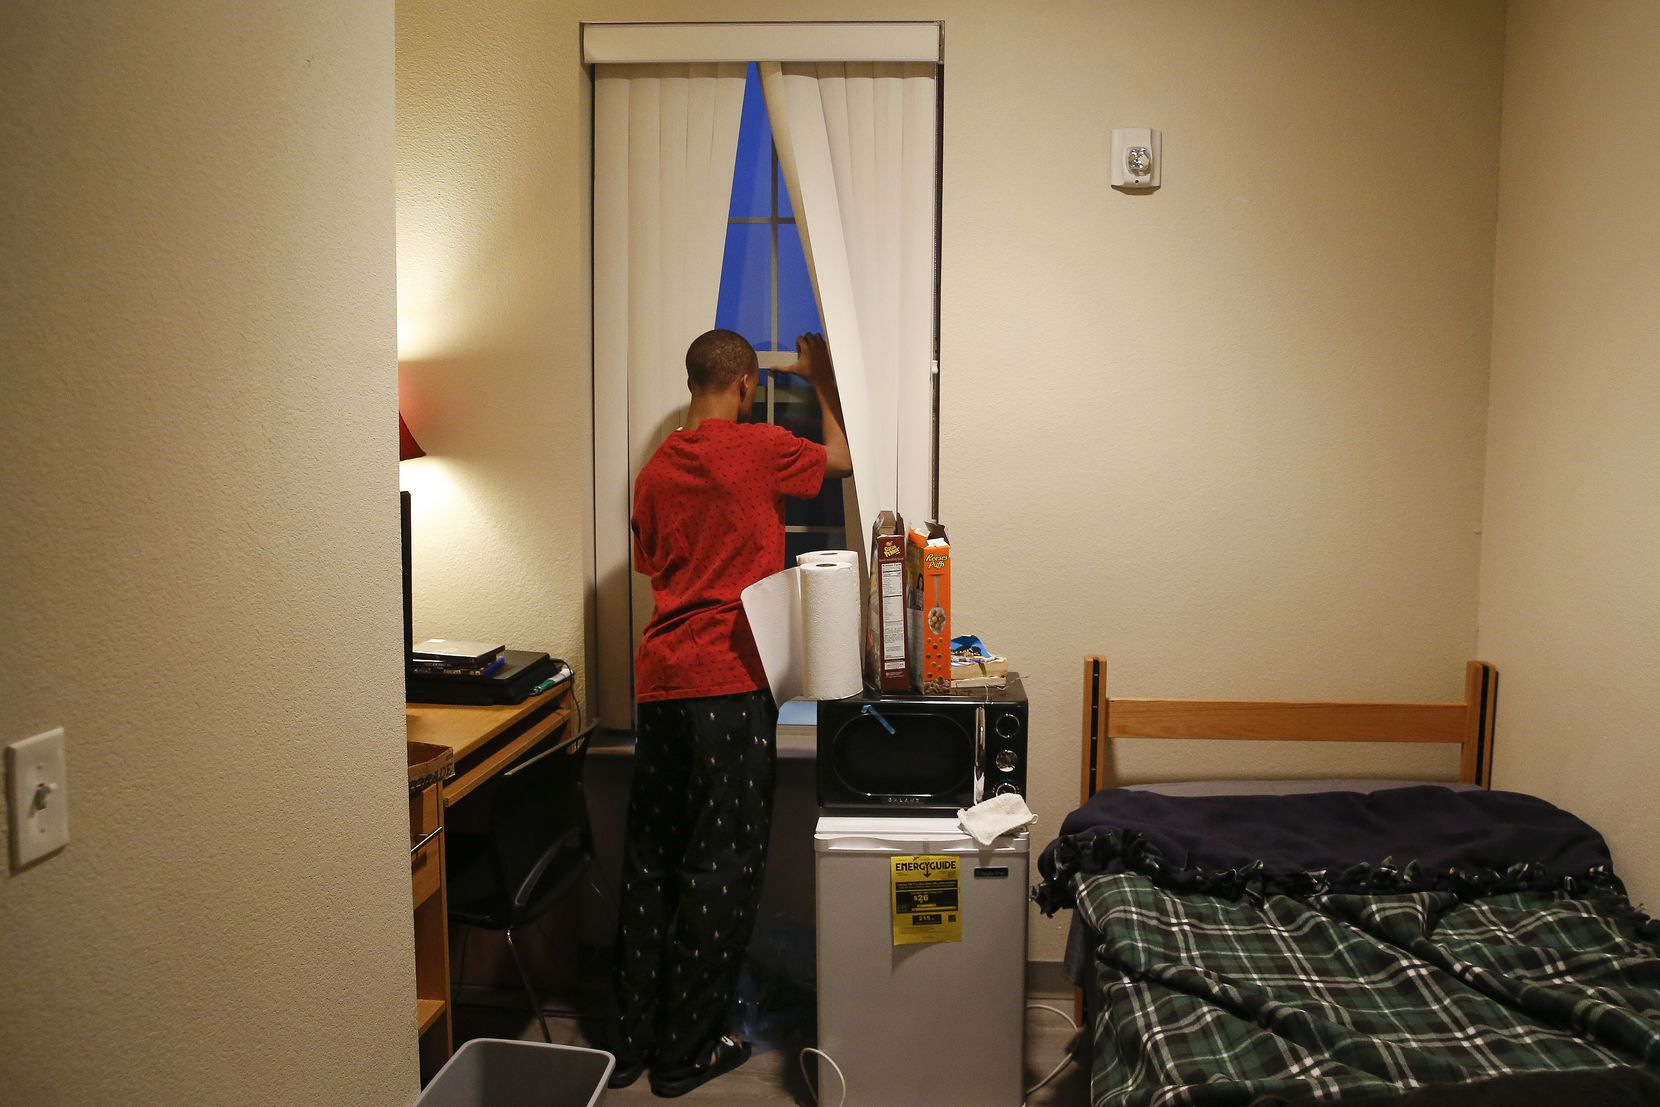 Jaylon Miller cracks his window for a breath of fresh air in his dorm room at the University of North Texas at Dallas. Miller rises daily, often before the sun, makes his bed, gets dressed, and completes his homework before heading off for class.